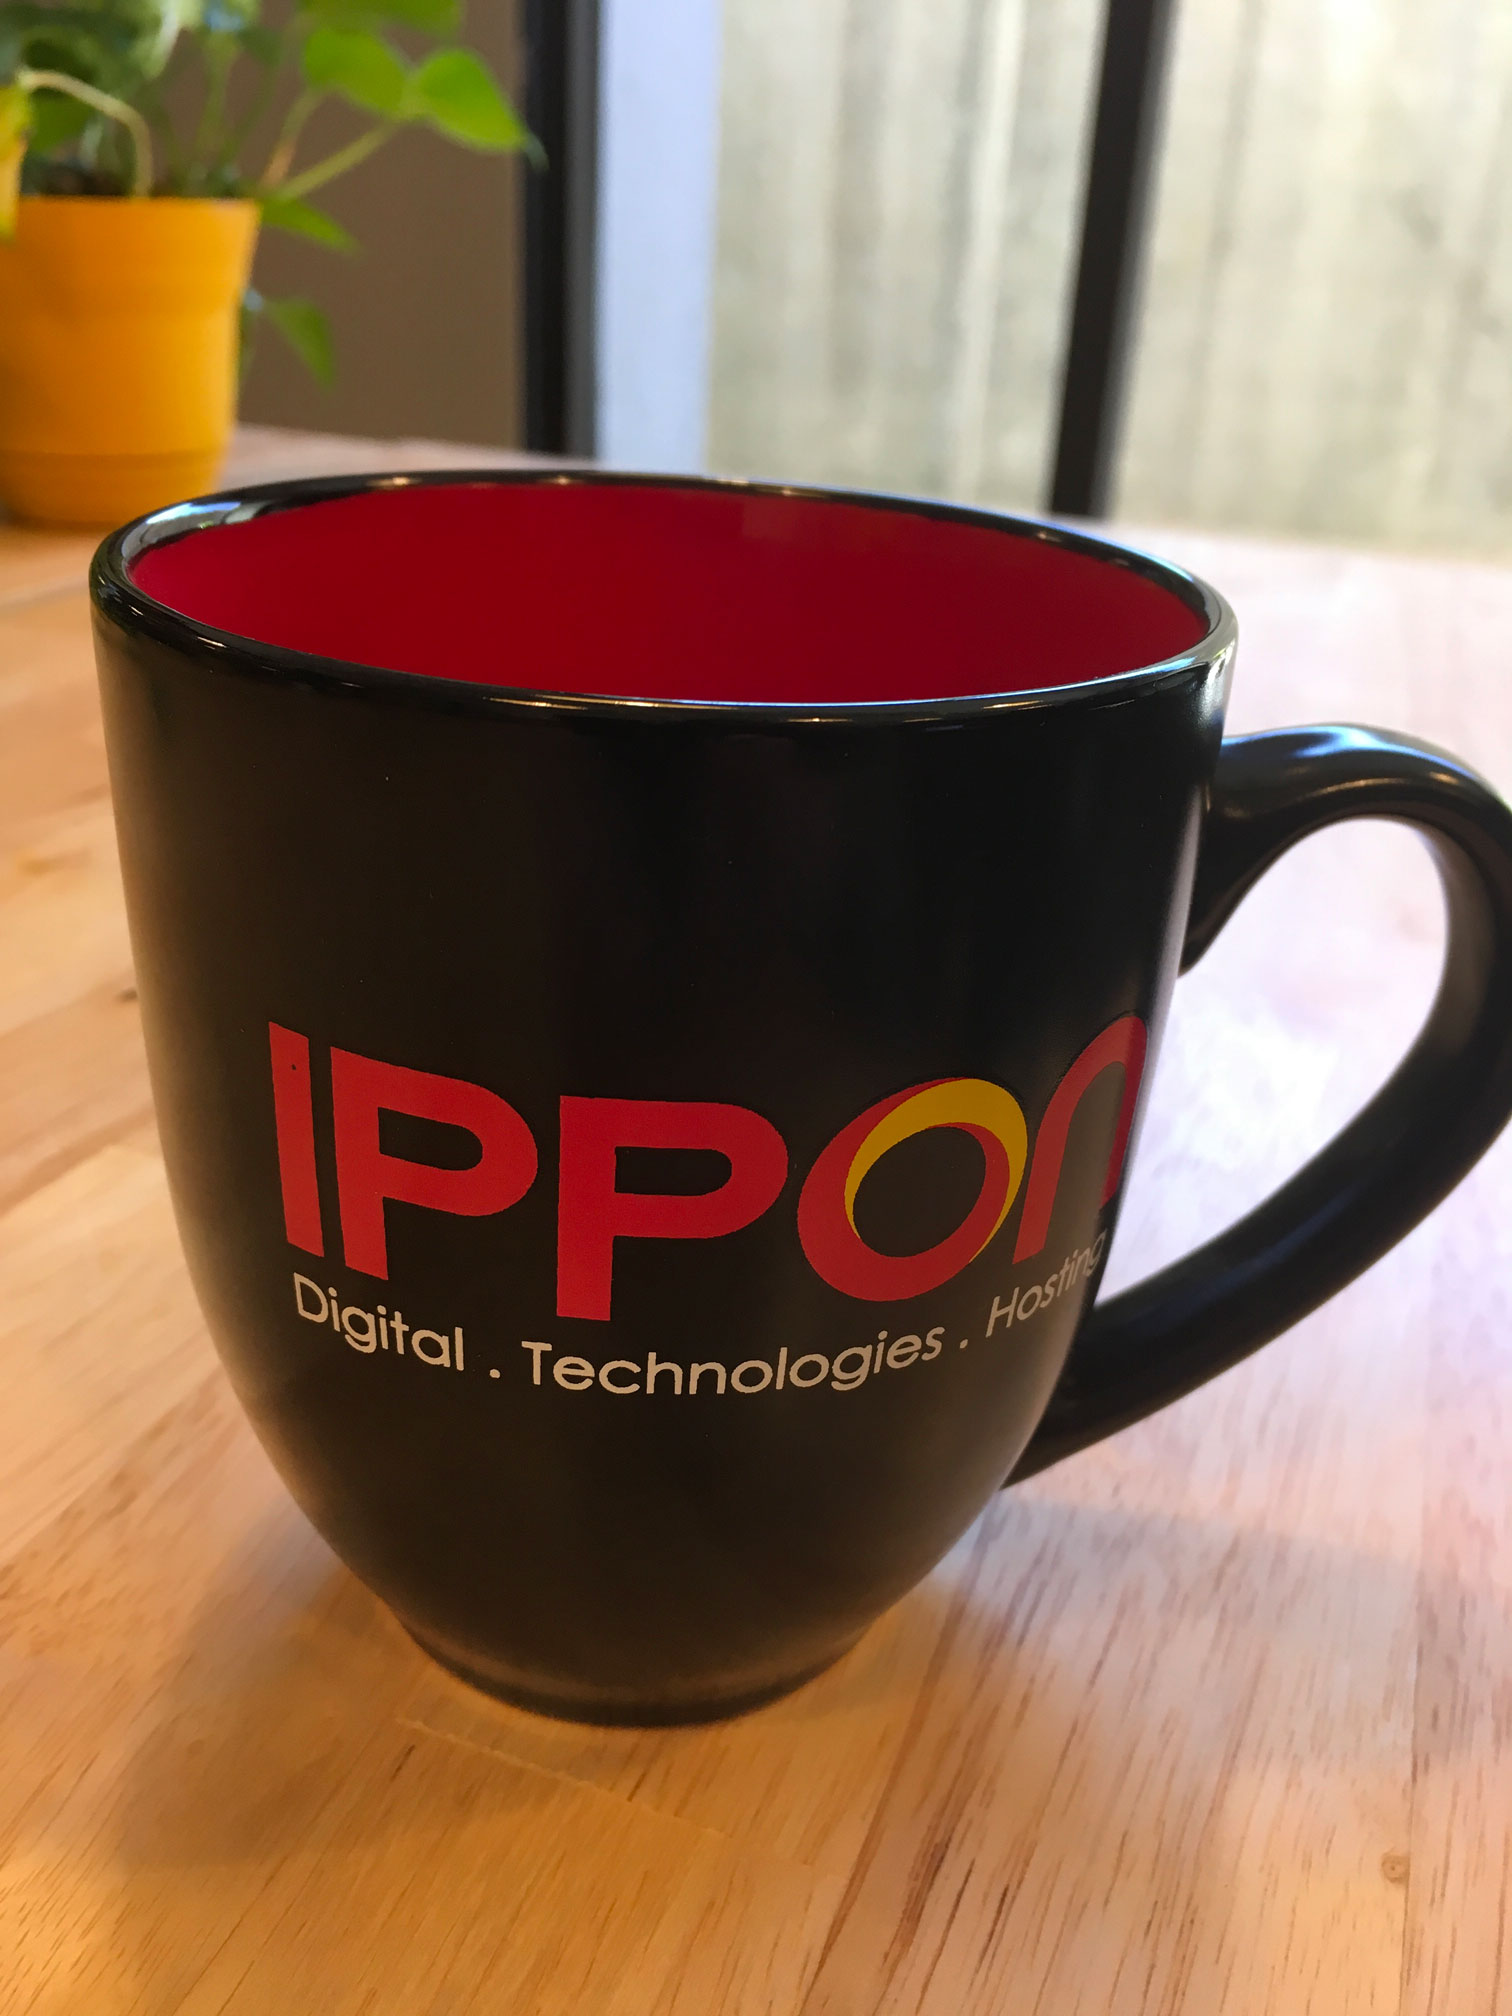 Ippon coffee mug